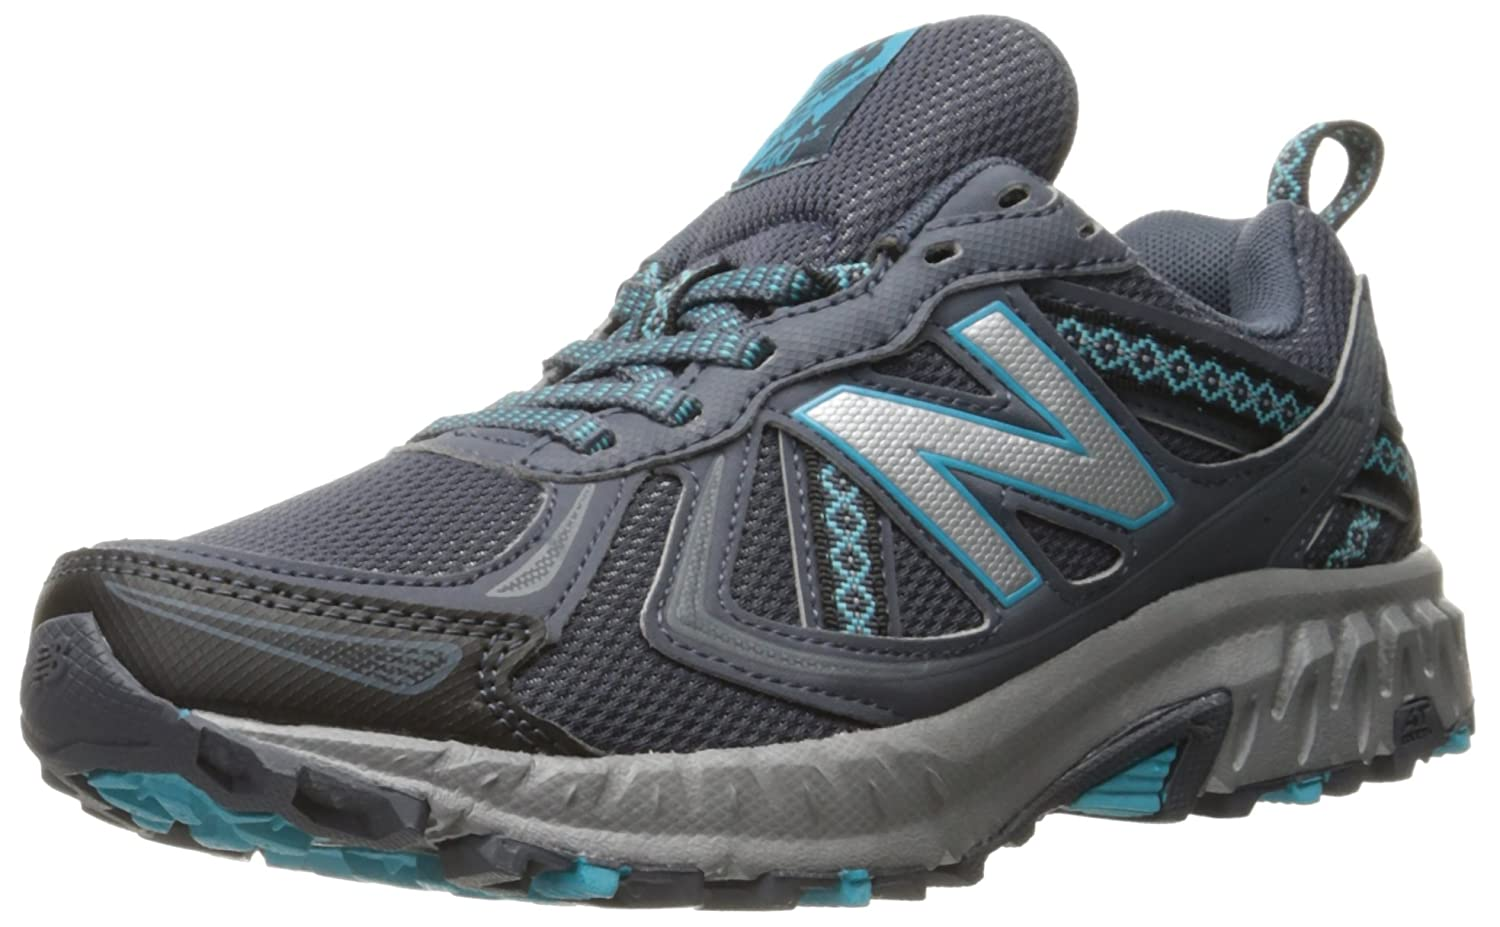 New Balance Women's WT410v5 Cushioning Trail Running Shoe B01LXZR55Y 7.5 B(M) US|Grey